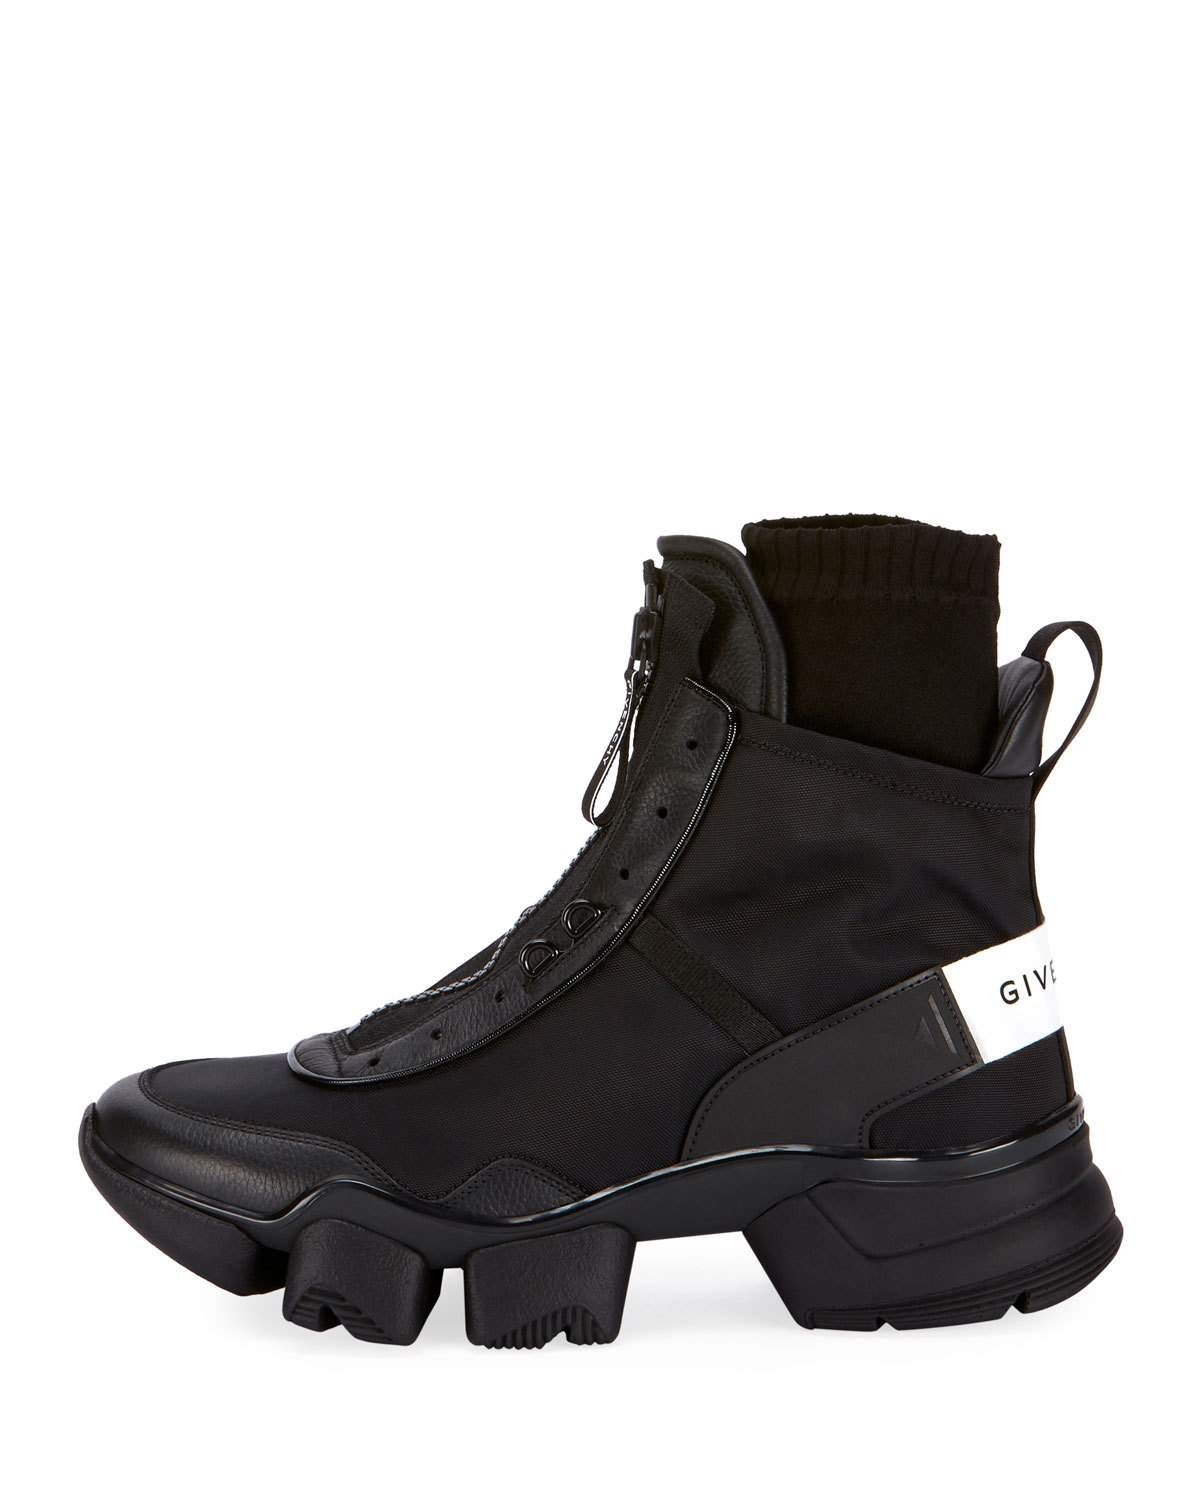 21c570d54e5ee Givenchy Men s Jaw Hybrid Sneaker Boots